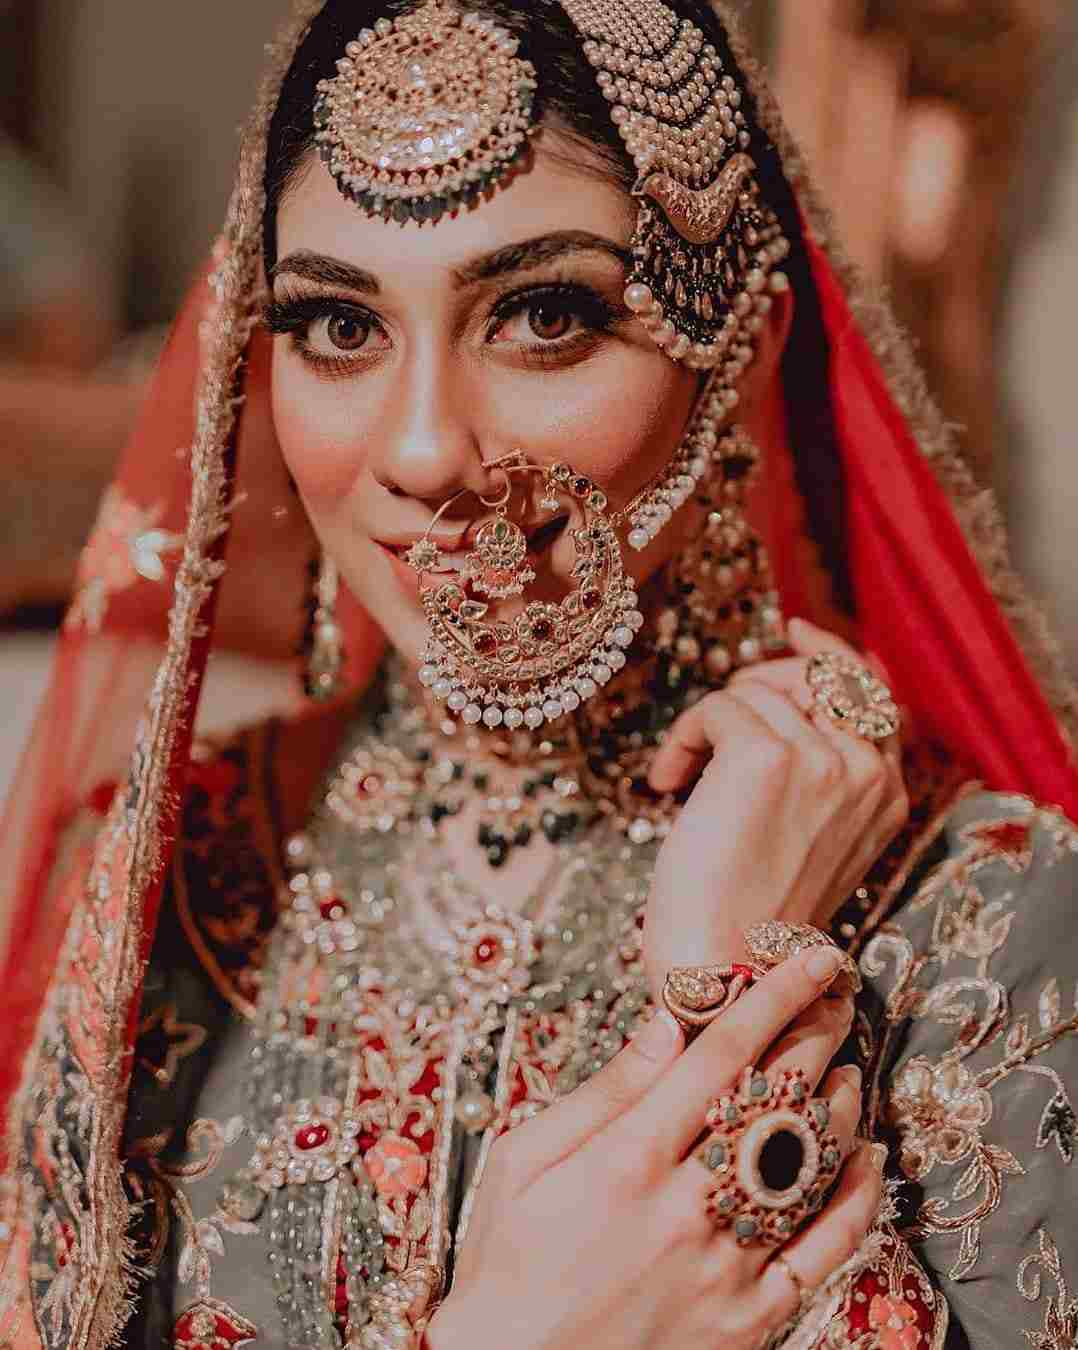 Bridal Portrait | bridal makeover | bridal nath | bridal naath | bridal jewelry | bridal makeup | bridal outfit